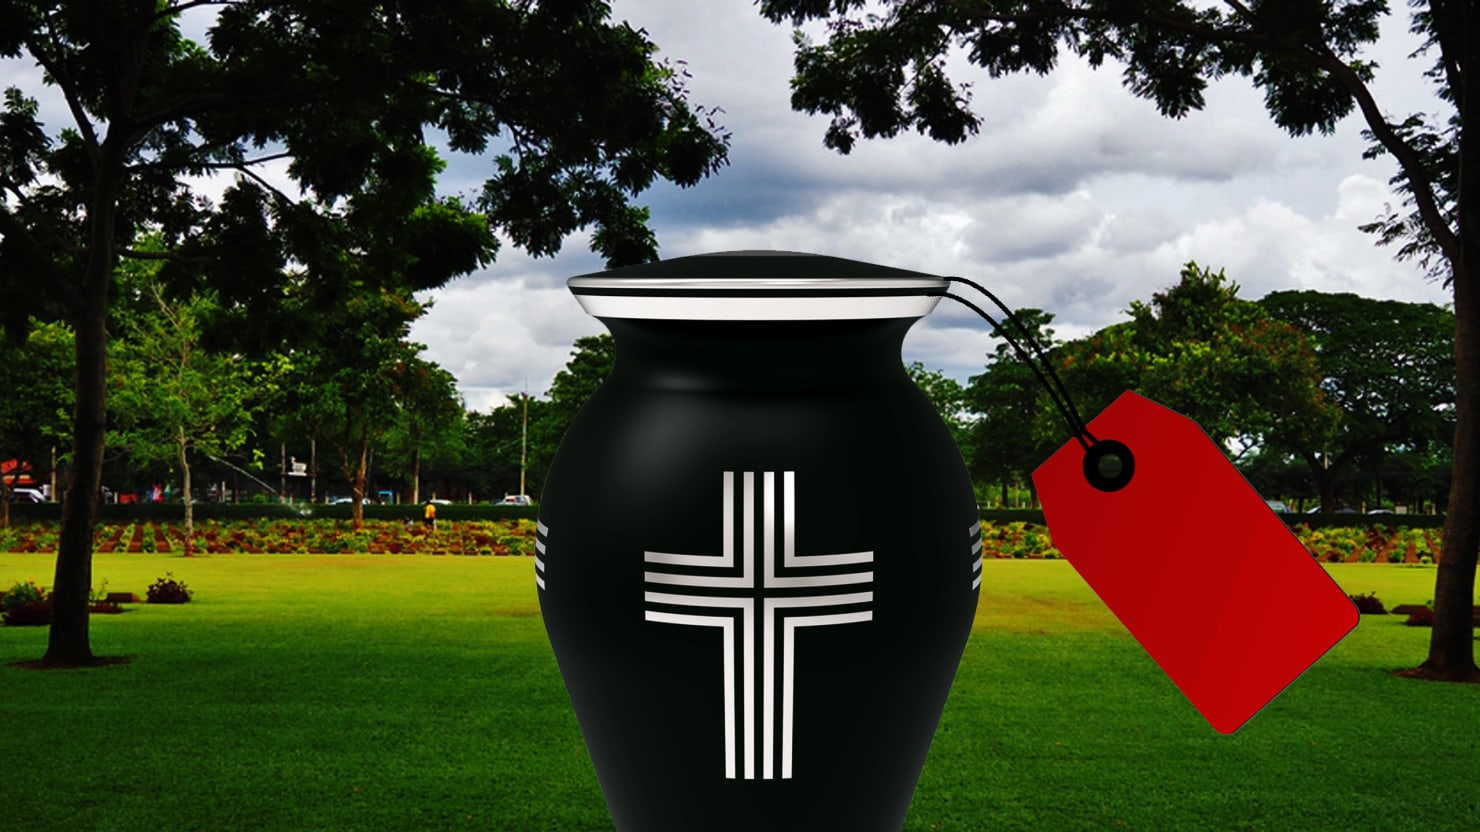 Why Did the Catholic Church Ban the Spreading of Ashes?